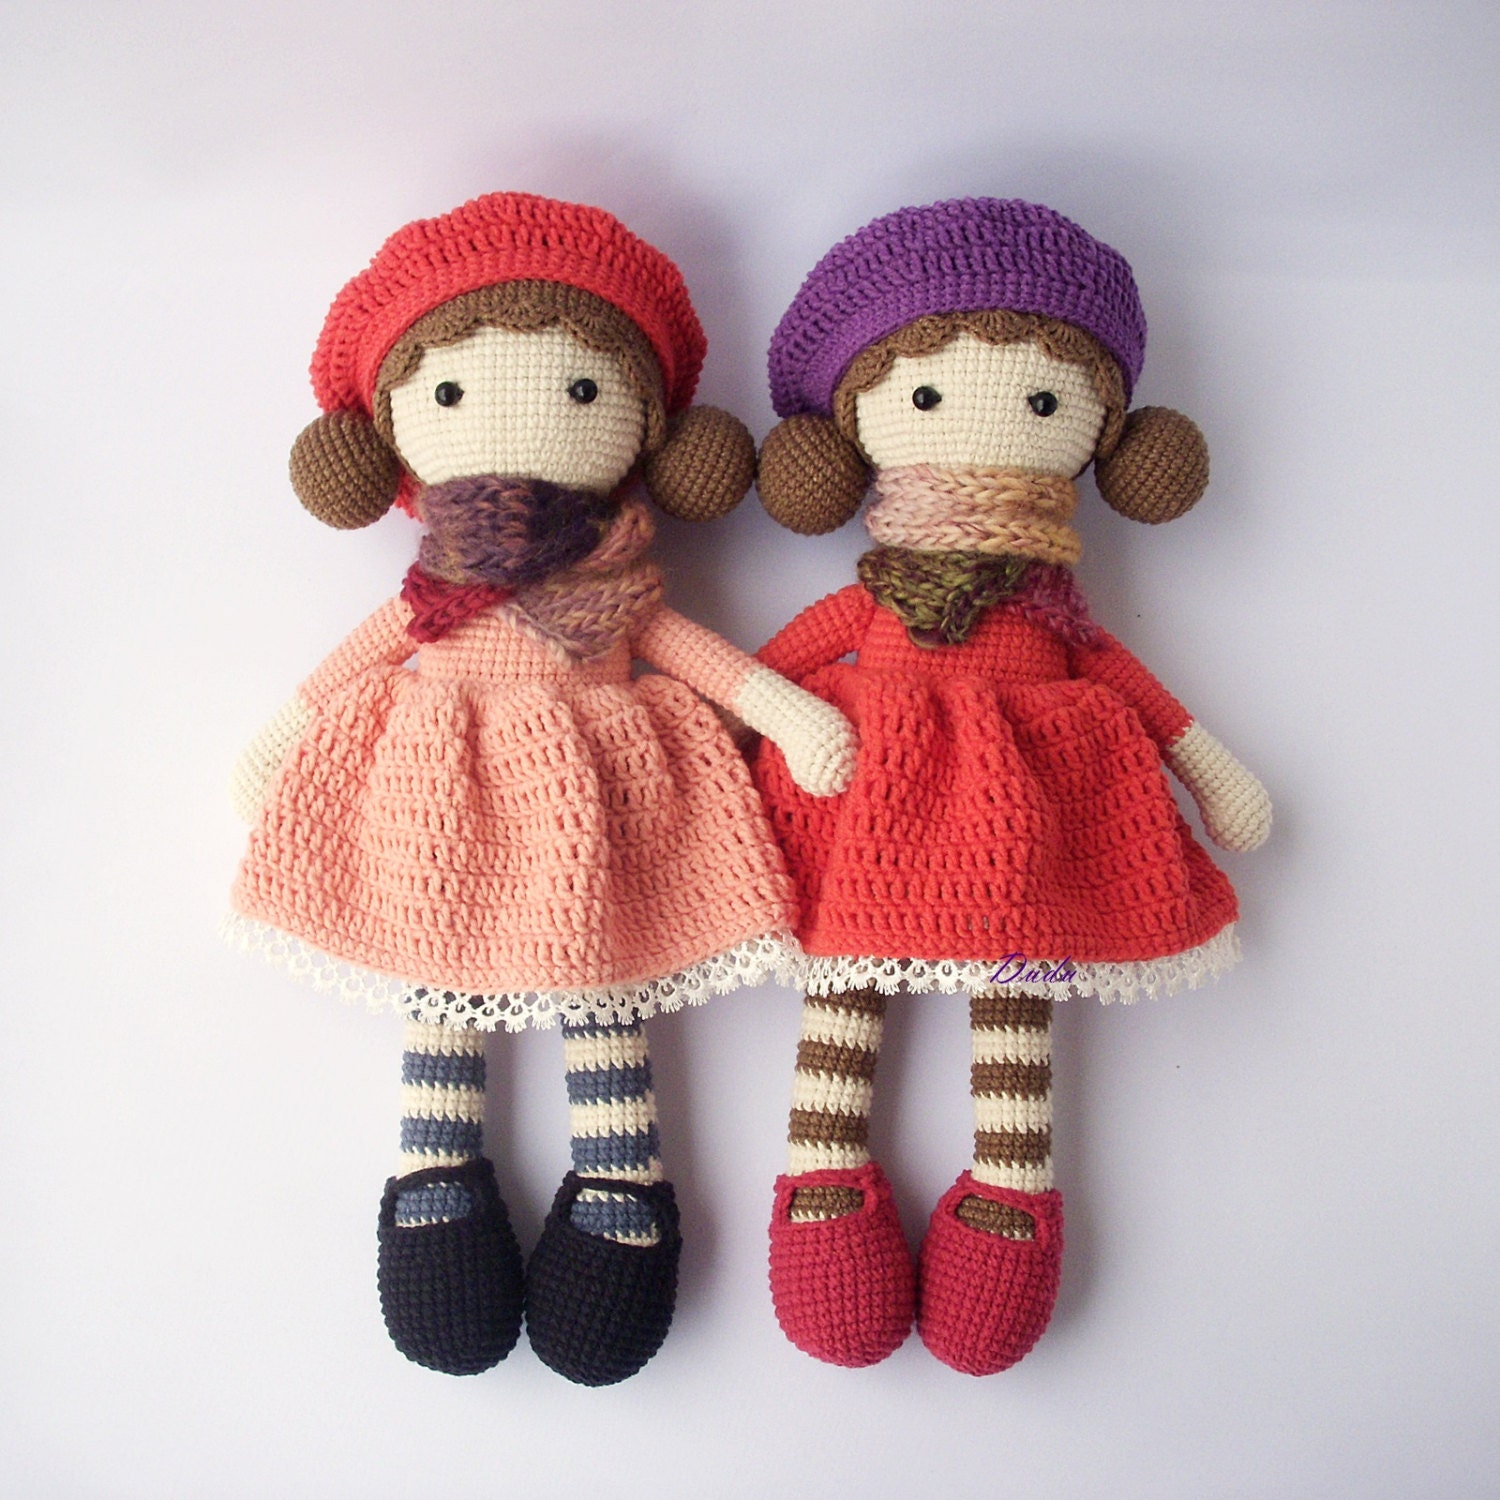 Amigurumi Doll Tutorial For Beginners : PDF Crochet doll Aria crochet doll Crochet Pattern Doll